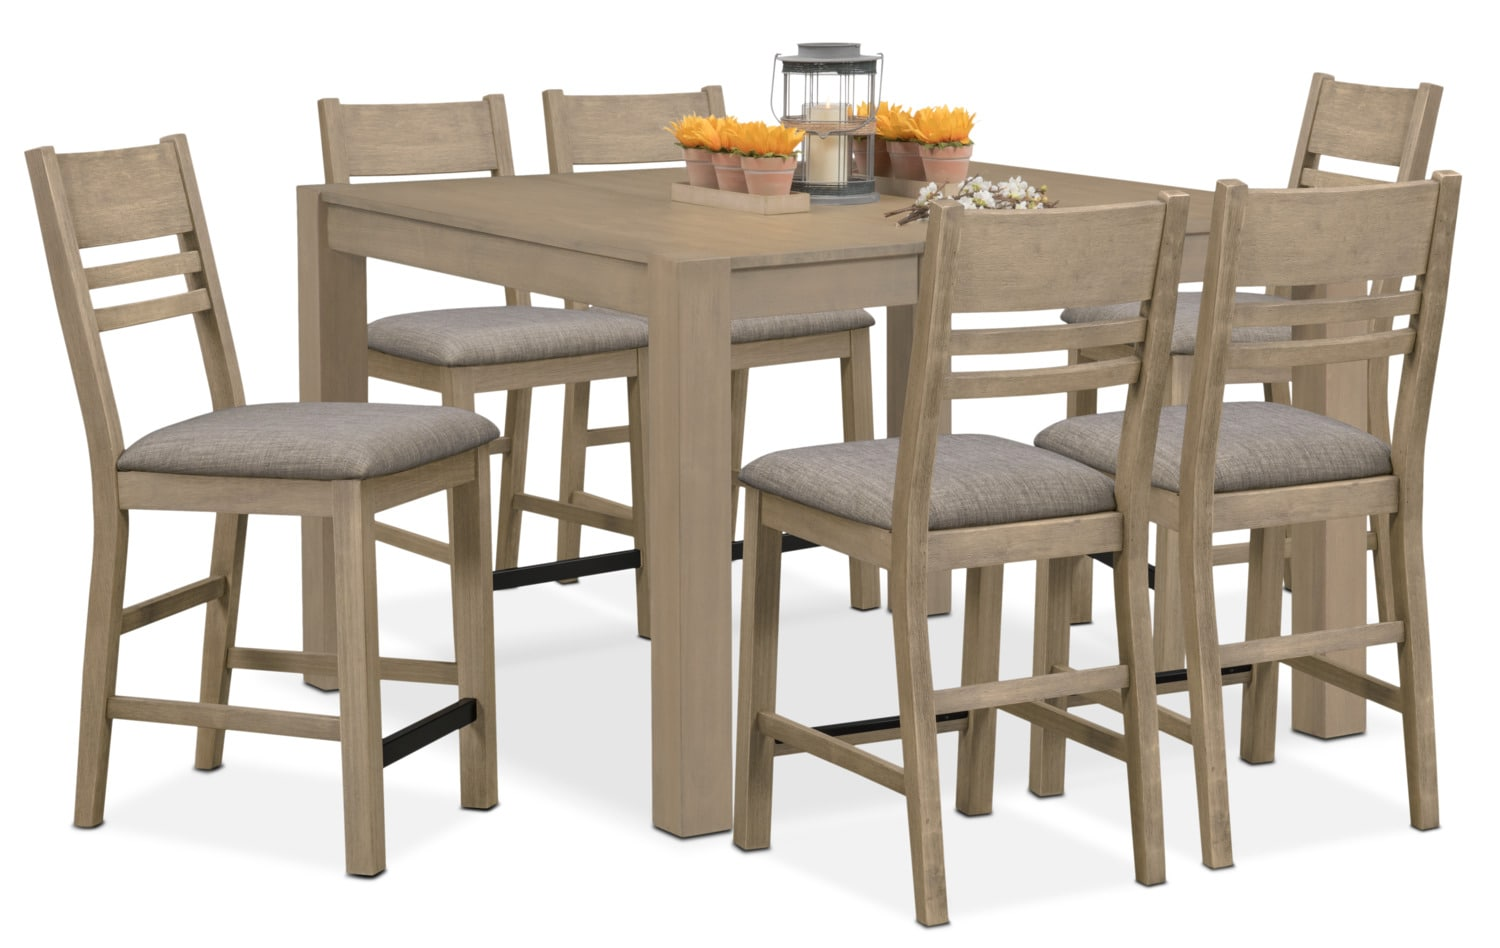 Dining Room Furniture - Tribeca Counter-Height Dining Table and 6 Dining Chairs